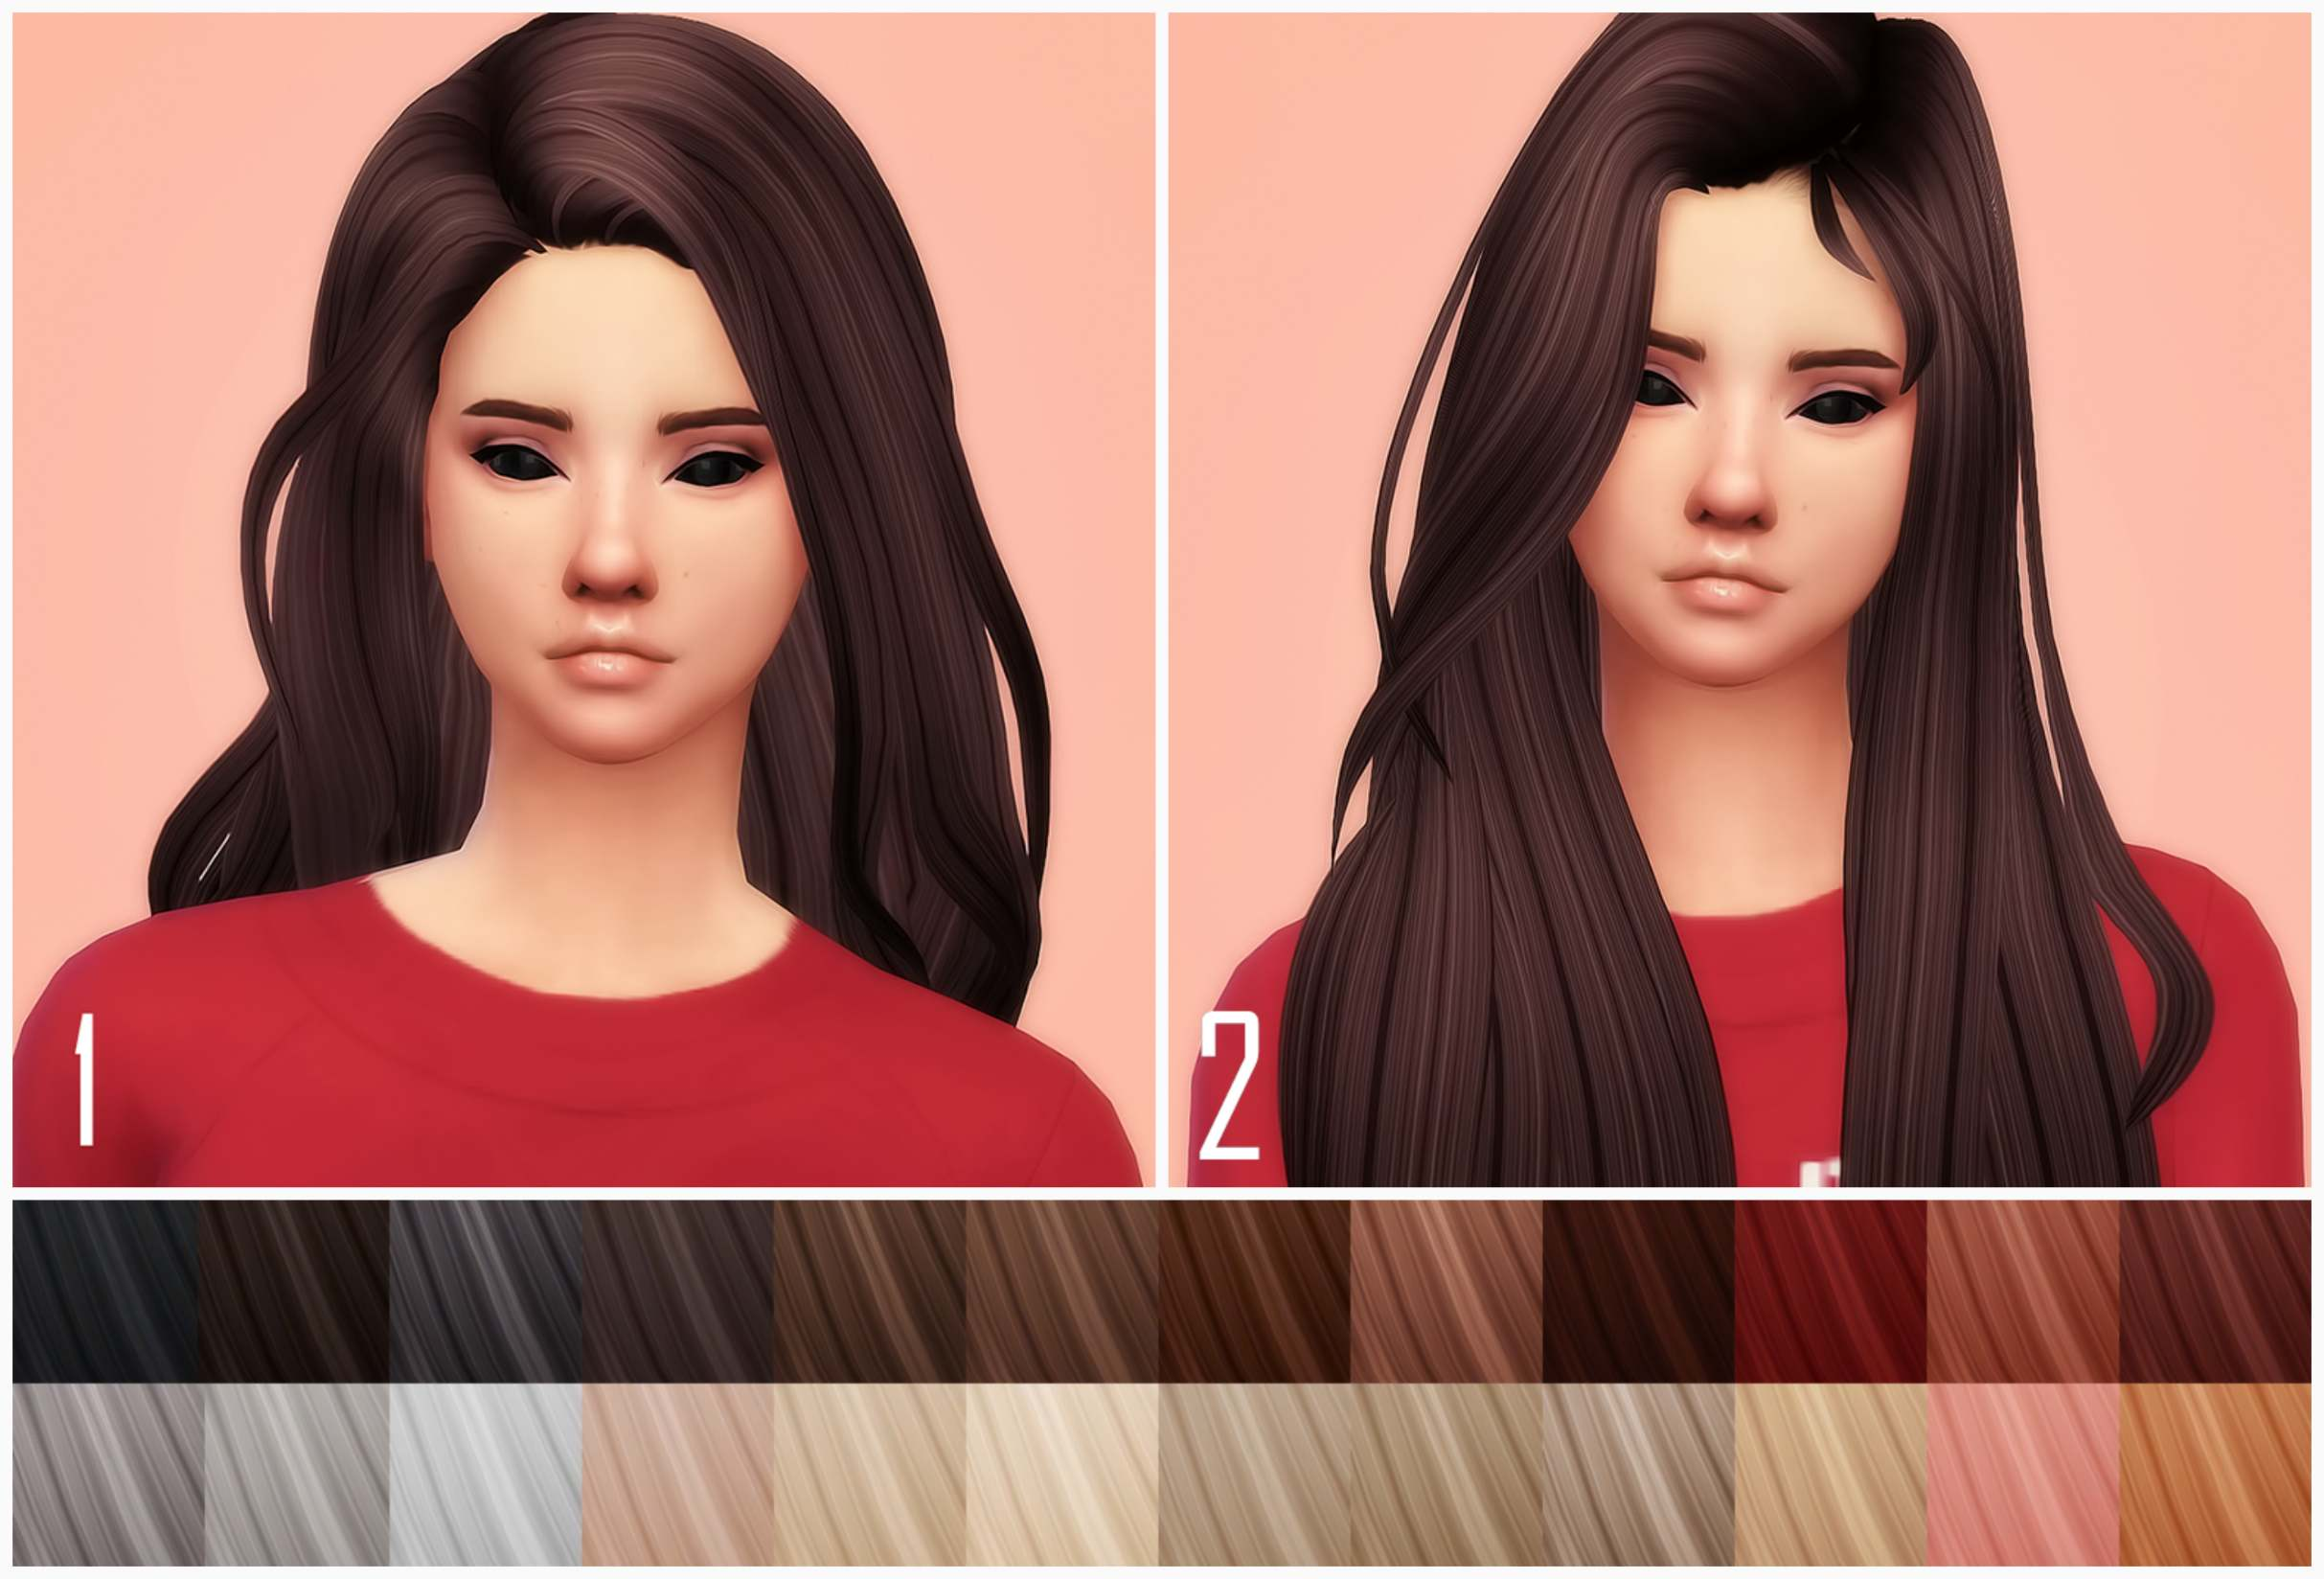 Набор причесок - HallowSims hairs clayified & recolored part 3